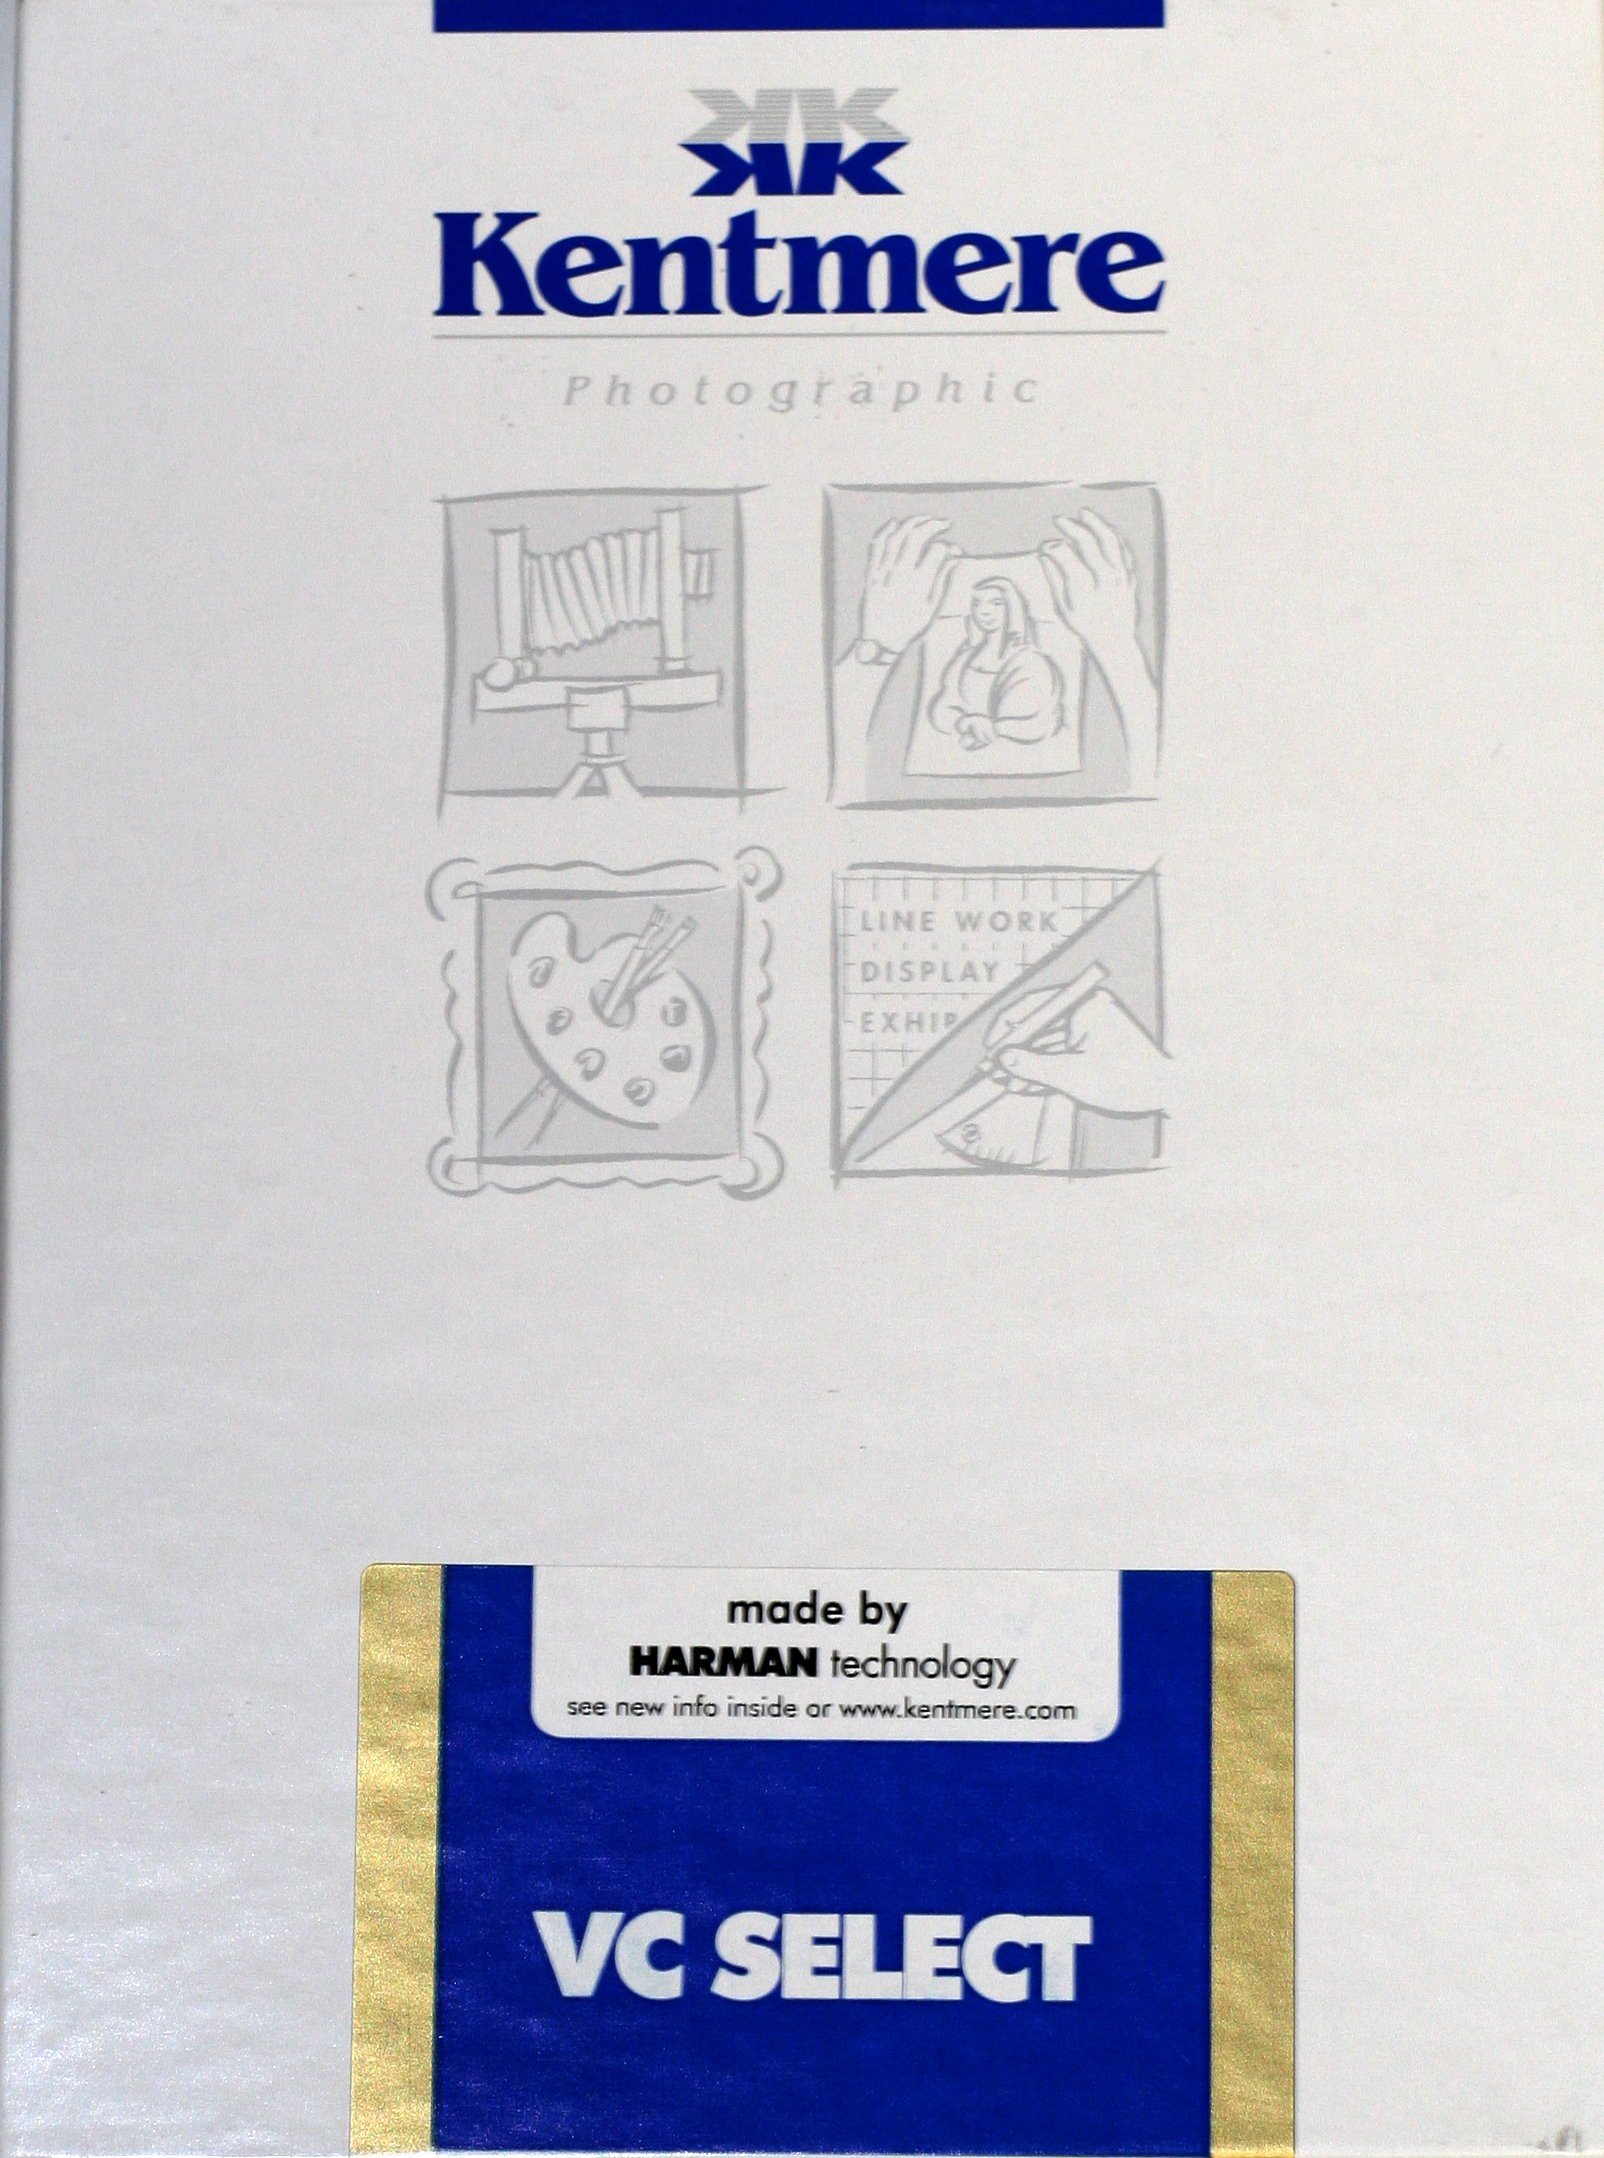 Kentmere VC Select, Variable Contrast Medium Weight RC Fine Lustre Paper, 8x10'', 100 Sheets